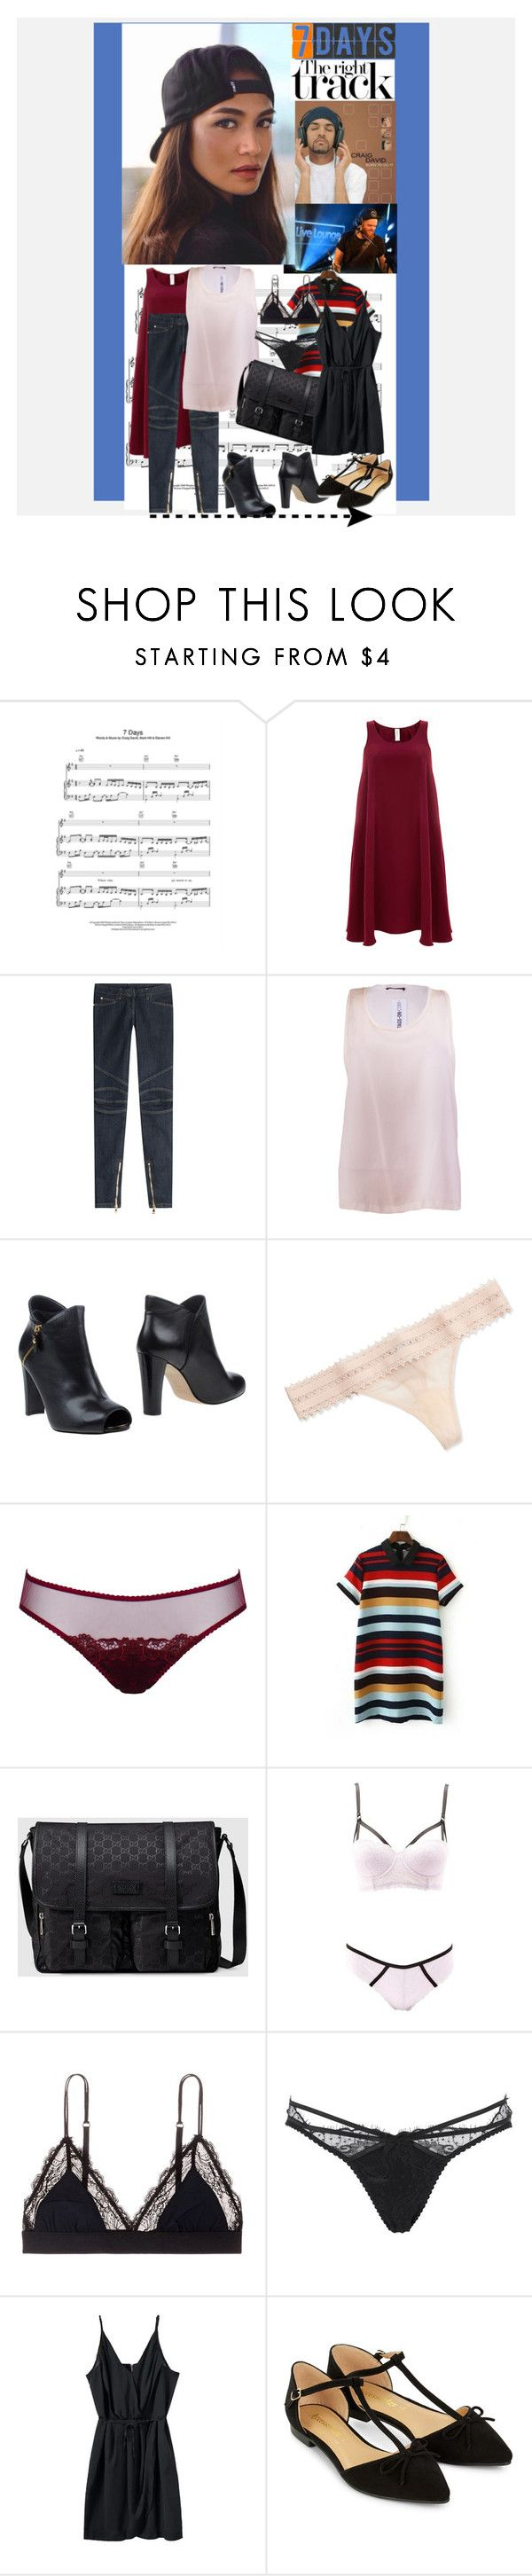 """""""7 Days by Craig David Covered by Jack Garratt in  the BBC Live Lounge"""" by bklou ❤ liked on Polyvore featuring Finery London, Balmain, Stuart Weitzman, La Perla, Derriére, Gucci, Charlotte Russe, LoveStories, Agent Provocateur and WithChic"""